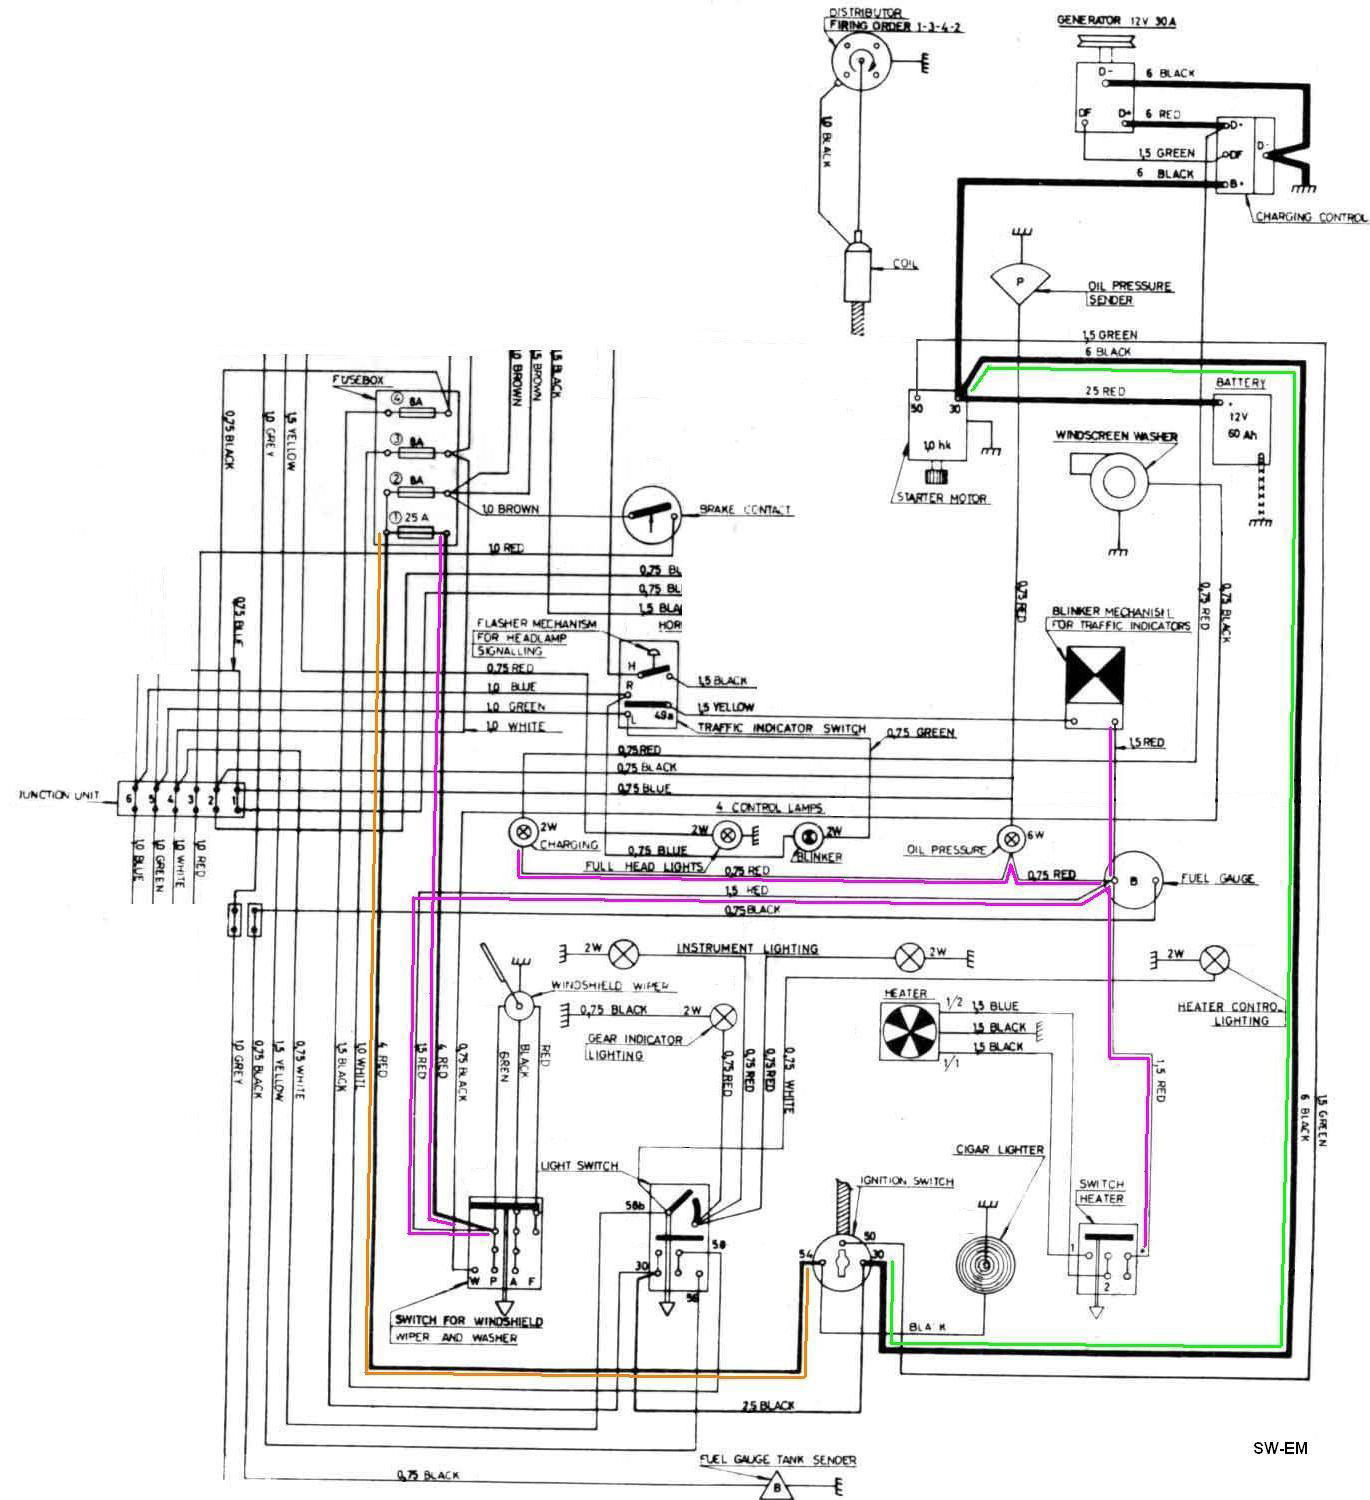 Sierra Mp Addl further Saturn Sky Fuse Box Map additionally Maxresdefault in addition Volvo Wiring Diagram Speed Control in addition Pic. on volvo ignition switch wiring diagram